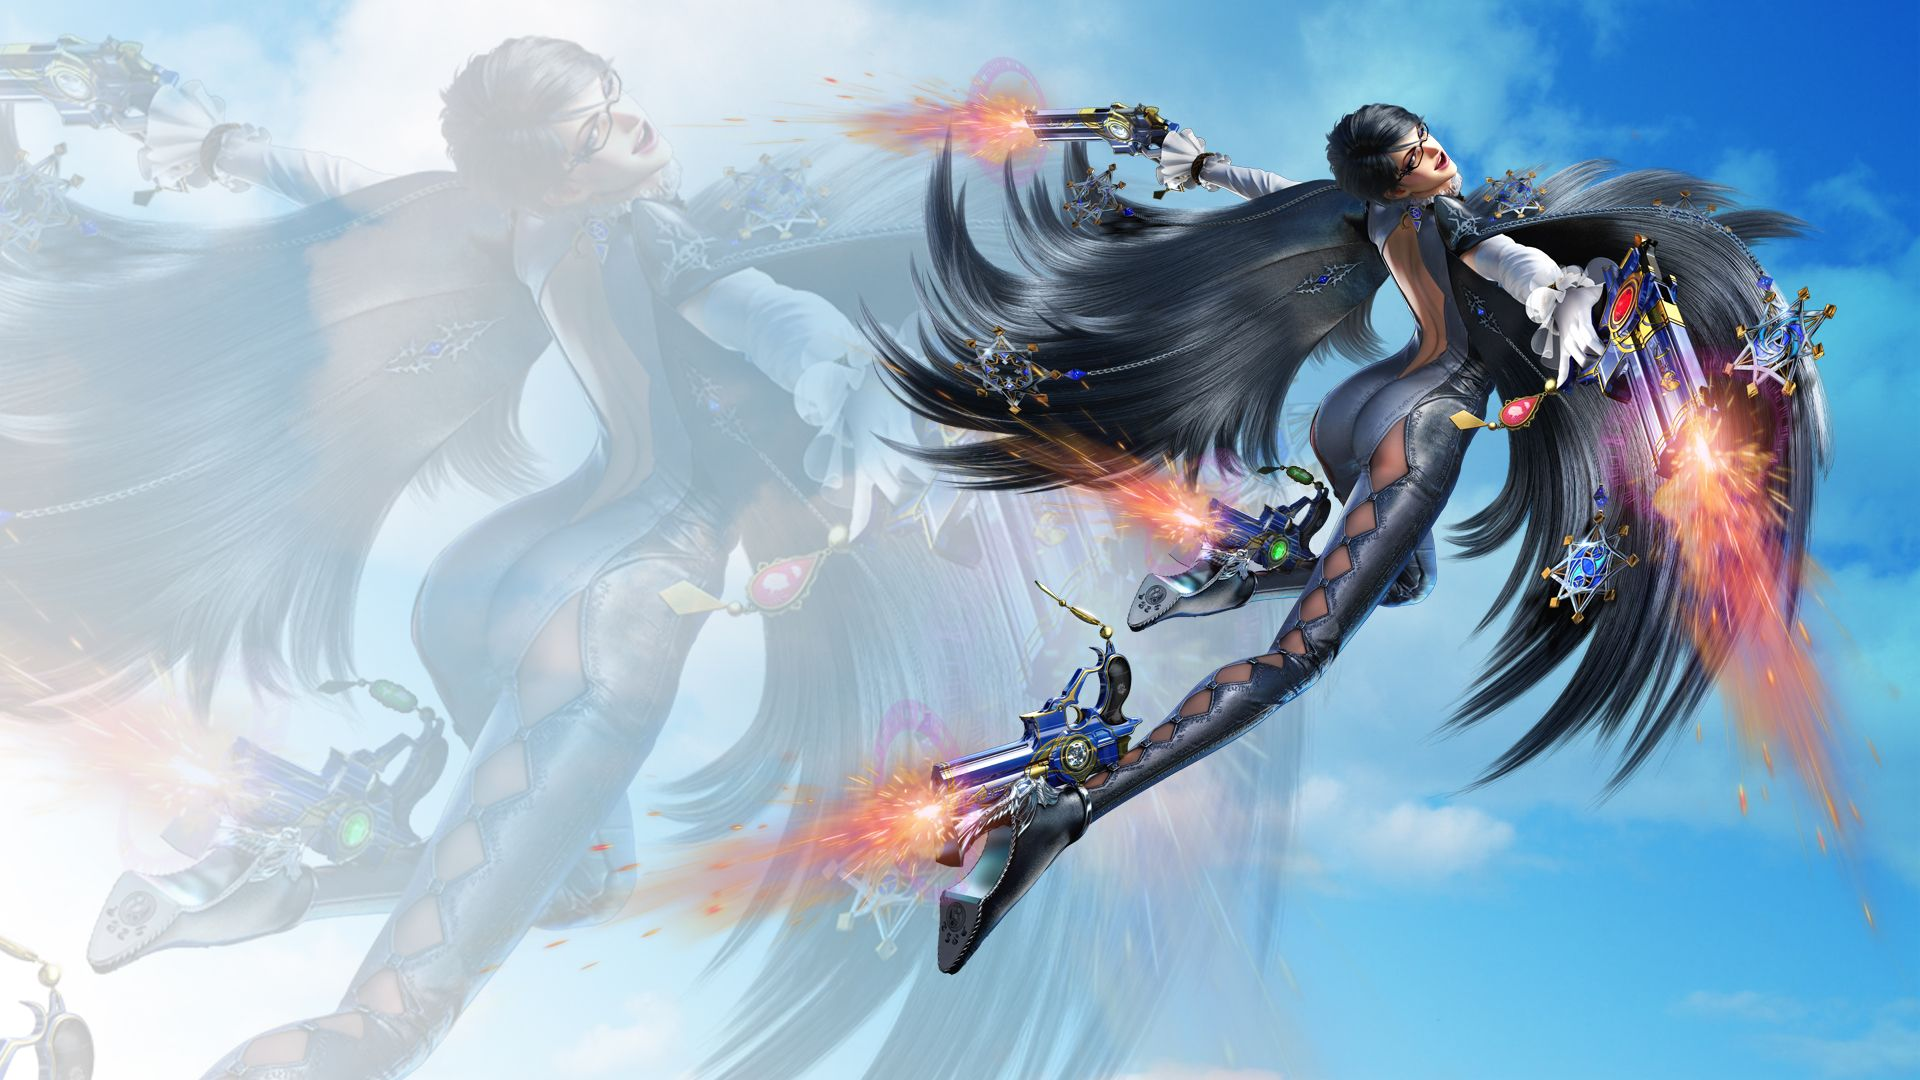 Bayonetta Iphone Wallpaper Ile